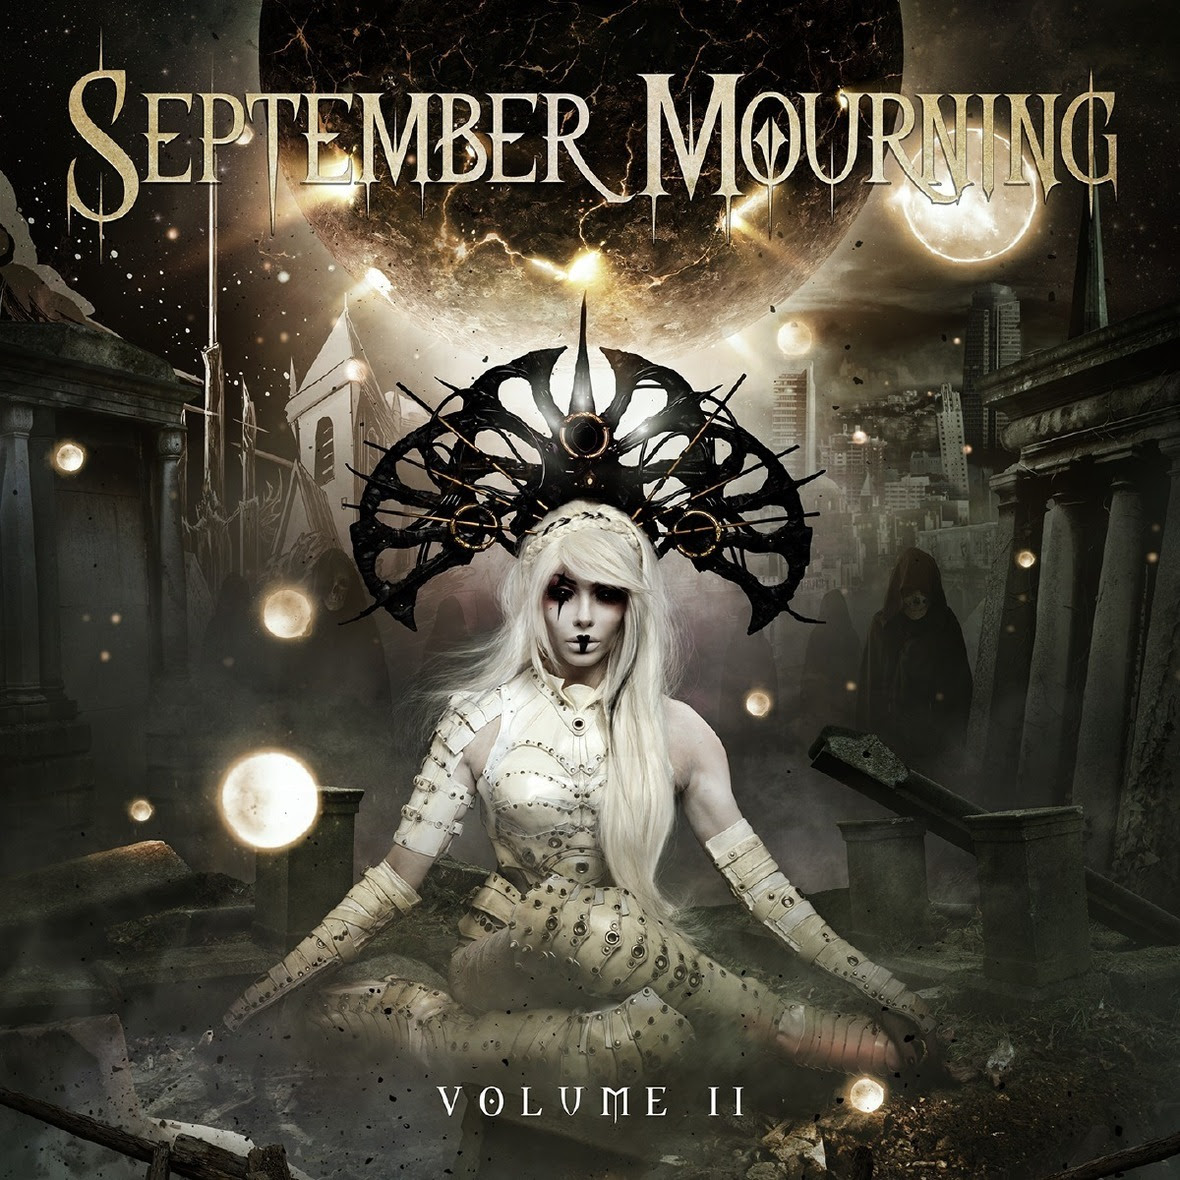 september mourning volume 2 cover art